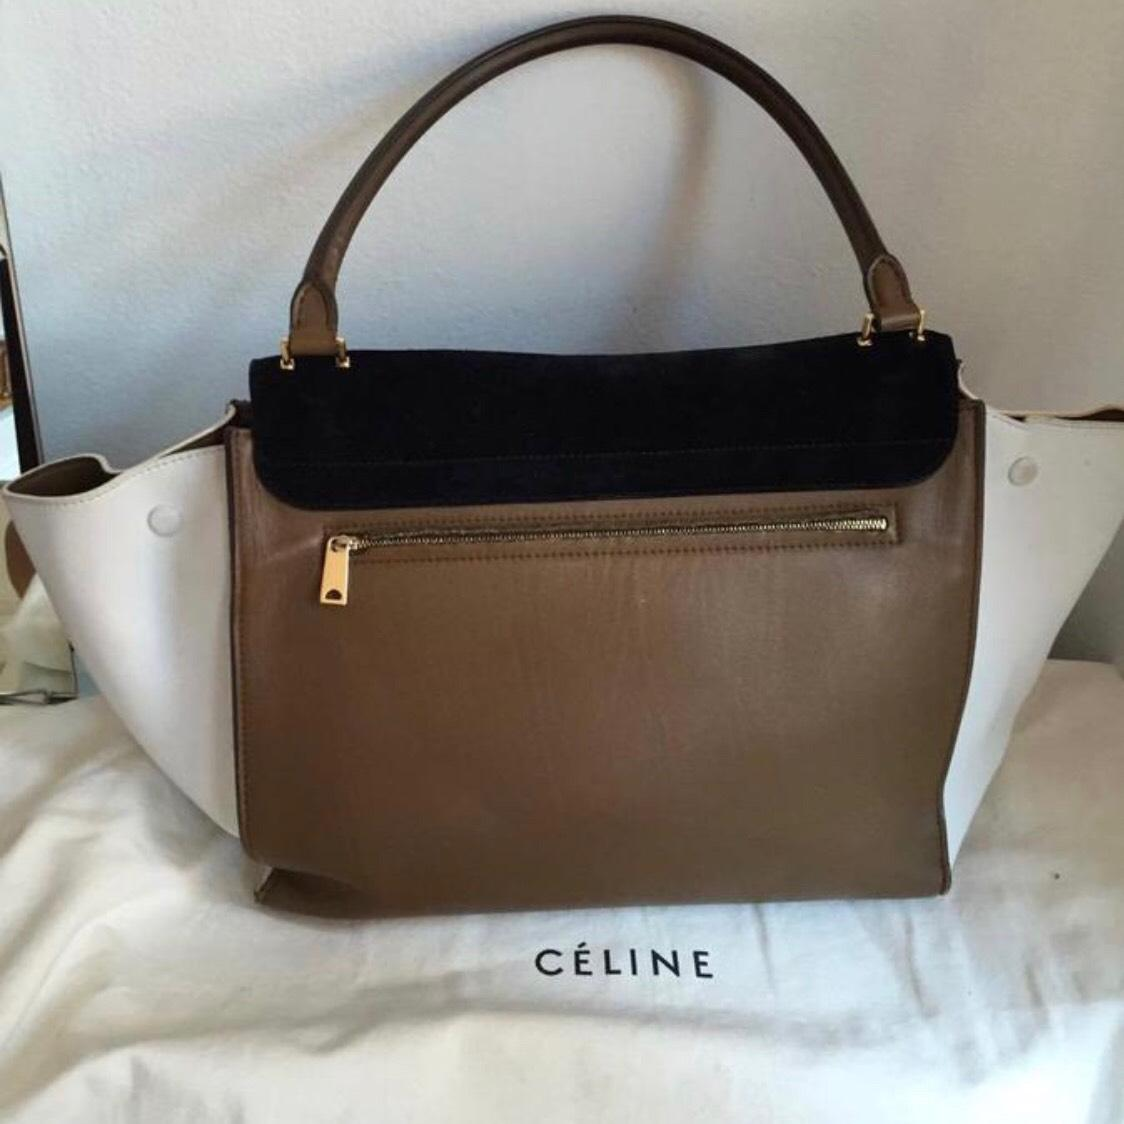 df47d8f39831 Celine Hobo Medium Replica handbag prices 2014 celine luggage little  classic celine bag pre owned celine bag,cheap celine handbags celine  handbags spring ...